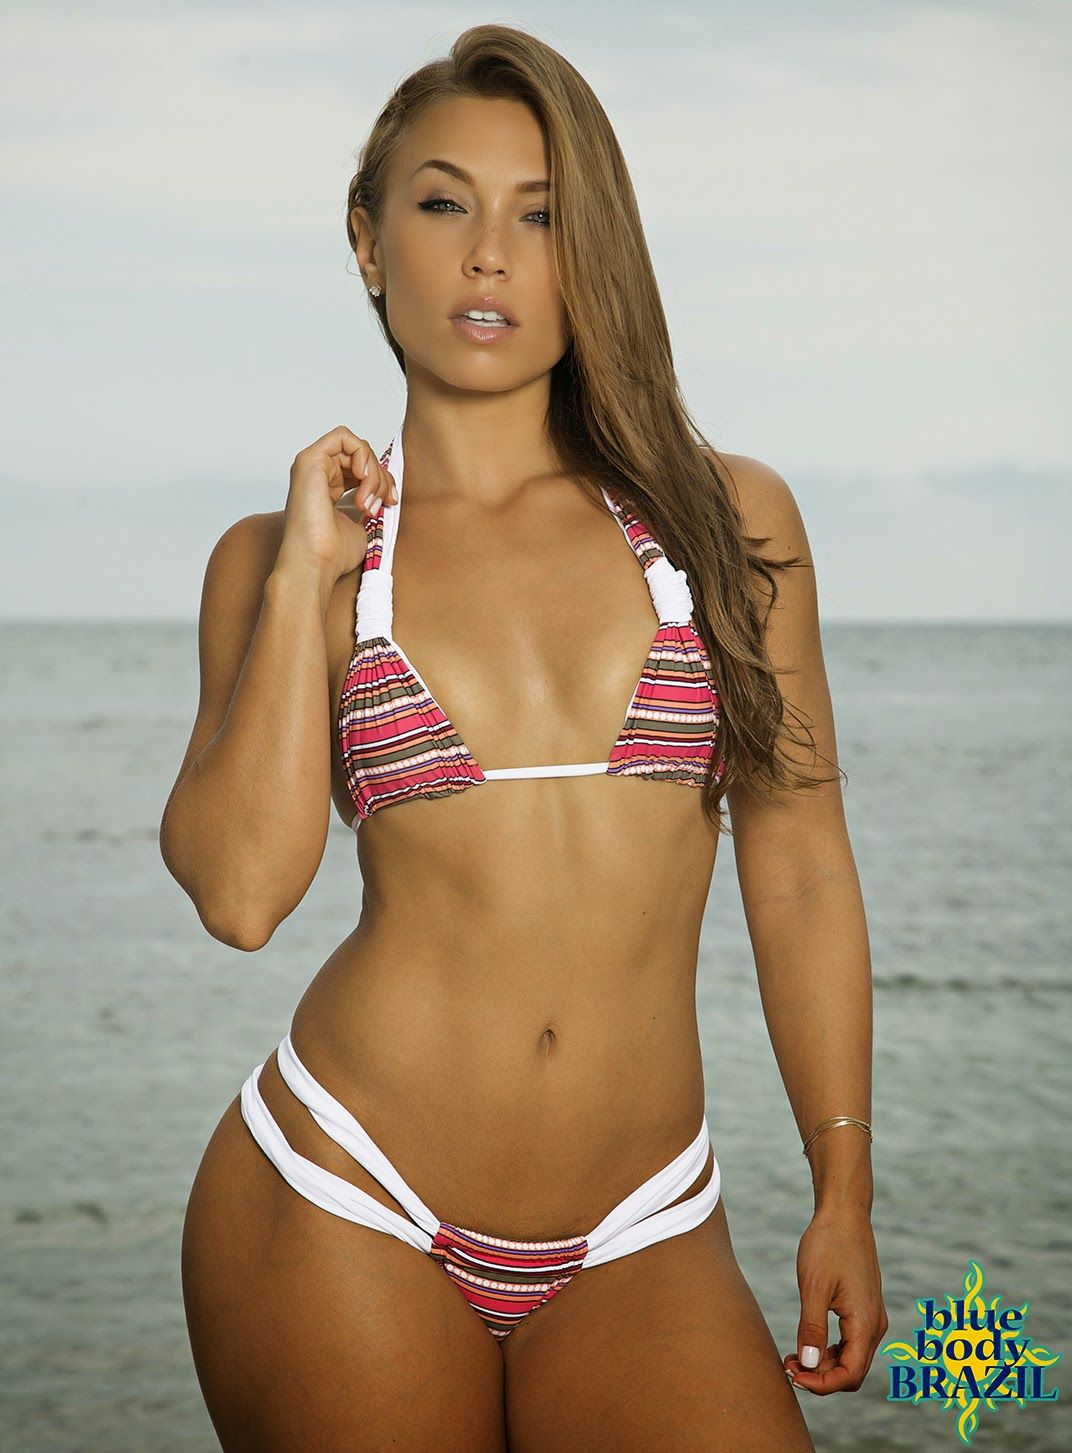 Nicole Mejia Fappening Sexy - 47 Photos - 2019 year